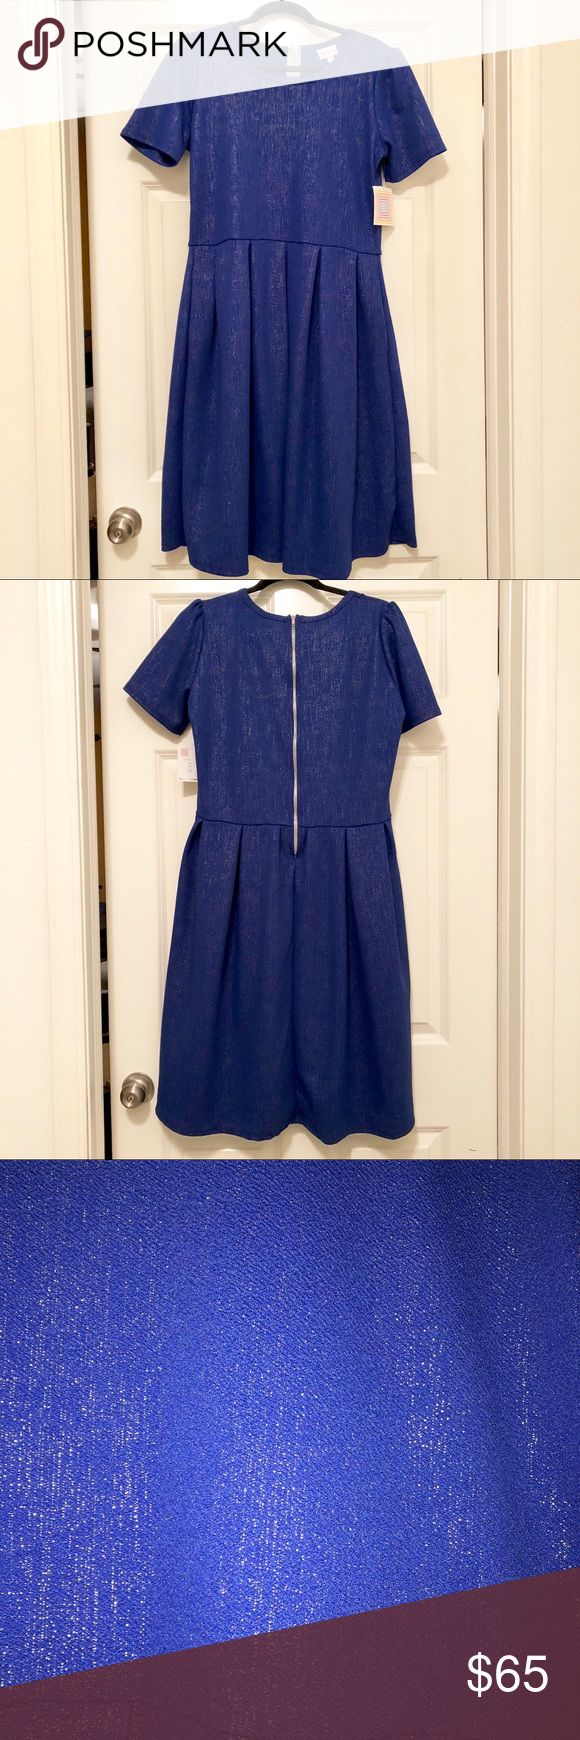 NWT LuLaRoe LTD Edition 2017 Holiday Amelia Dress NWT Rare Limited Edition Size XL beautiful and sparkling cobalt blue and gold shimmer LuLaRoe Amelia Dress with pockets !  This dress features a beautiful sparkling gold thread thru out the dress . Dress has  pockets and has a nice stretch to the dress but still holds its shape & has a zippered back. Item is new with tags and only worn to try on .Please feel free to ask questions🙂 All offers considered LuLaRoe Dresses